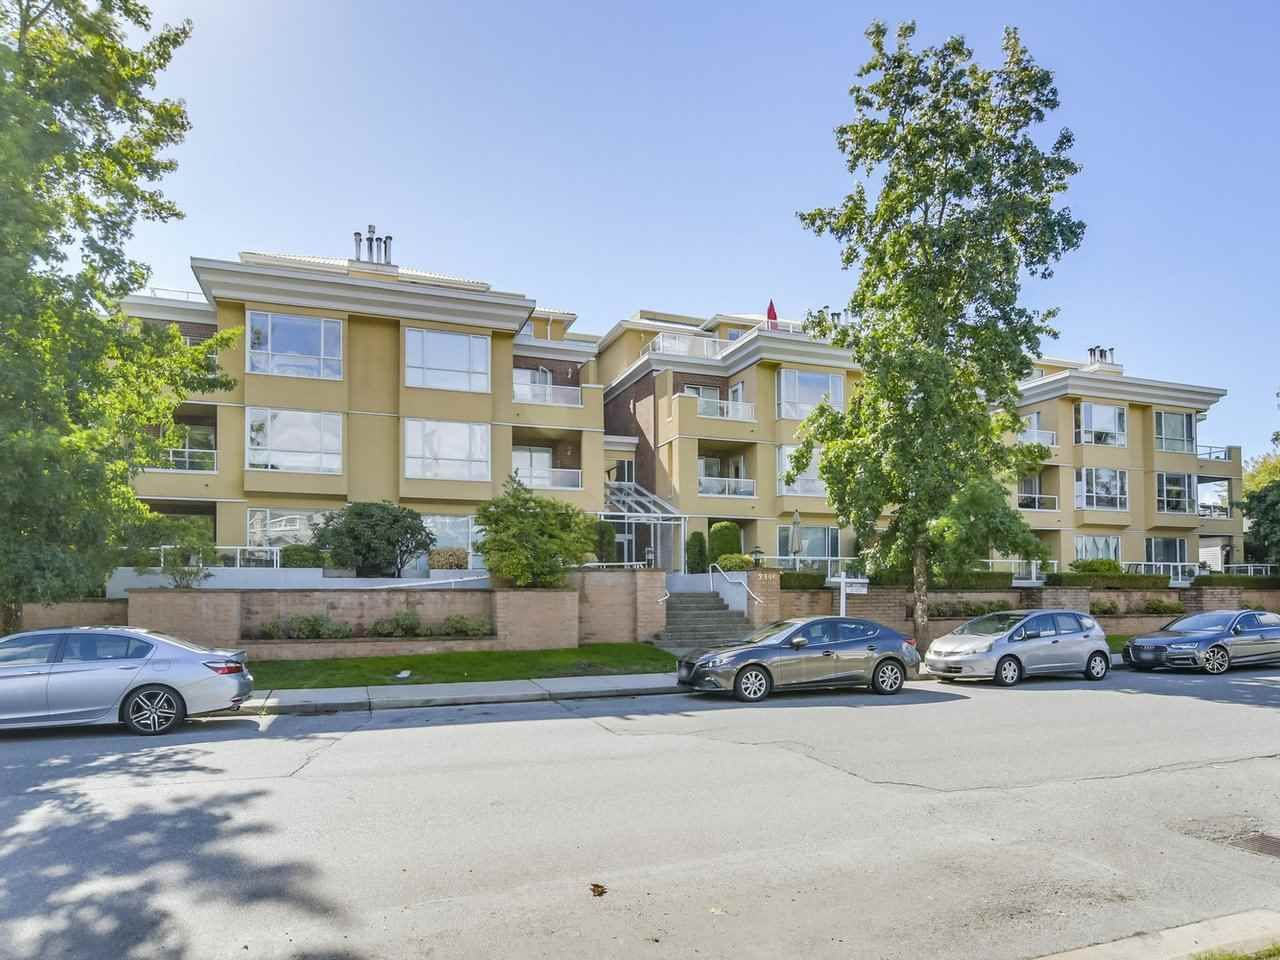 Main Photo: 301 2340 HAWTHORNE AVENUE in : Central Pt Coquitlam Condo for sale : MLS®# R2316603